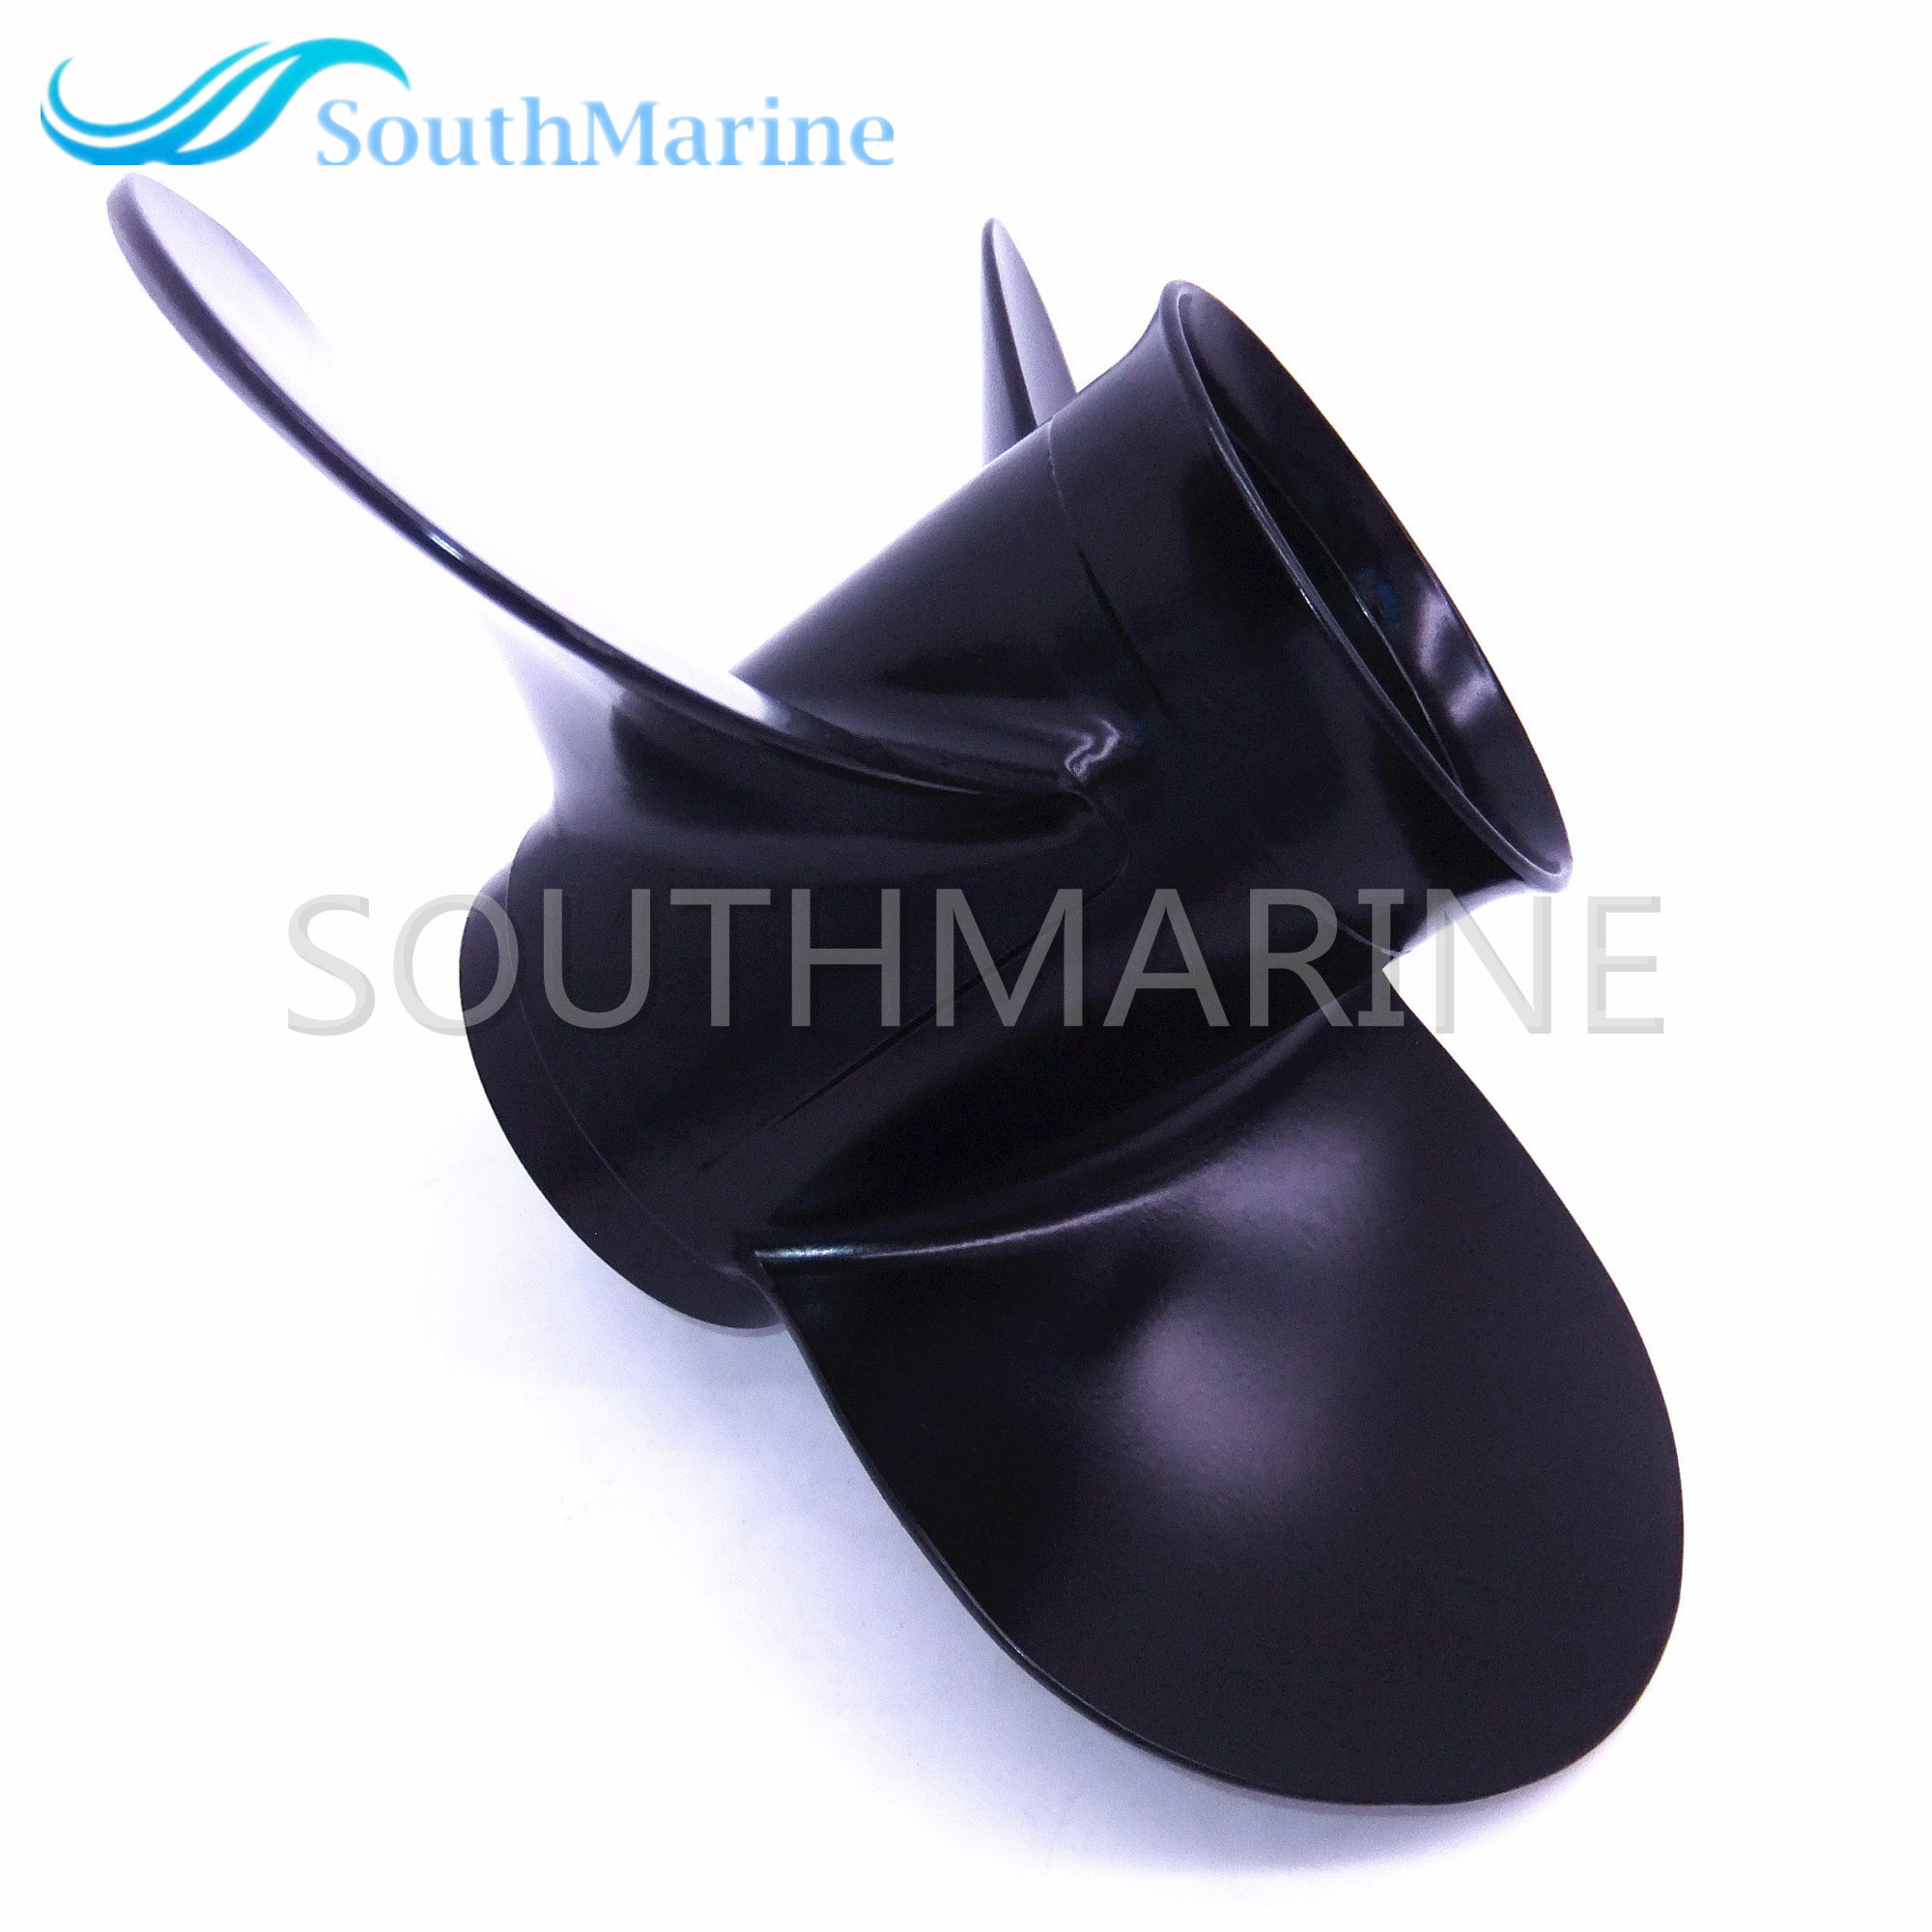 11 1/8x13 G Aluminum Propeller for Mercury 40HP 45HP 48HP 50HP 55HP 60HP 70HP Boat Motors 11 1/8 x 13 G Outboard Engine цены онлайн